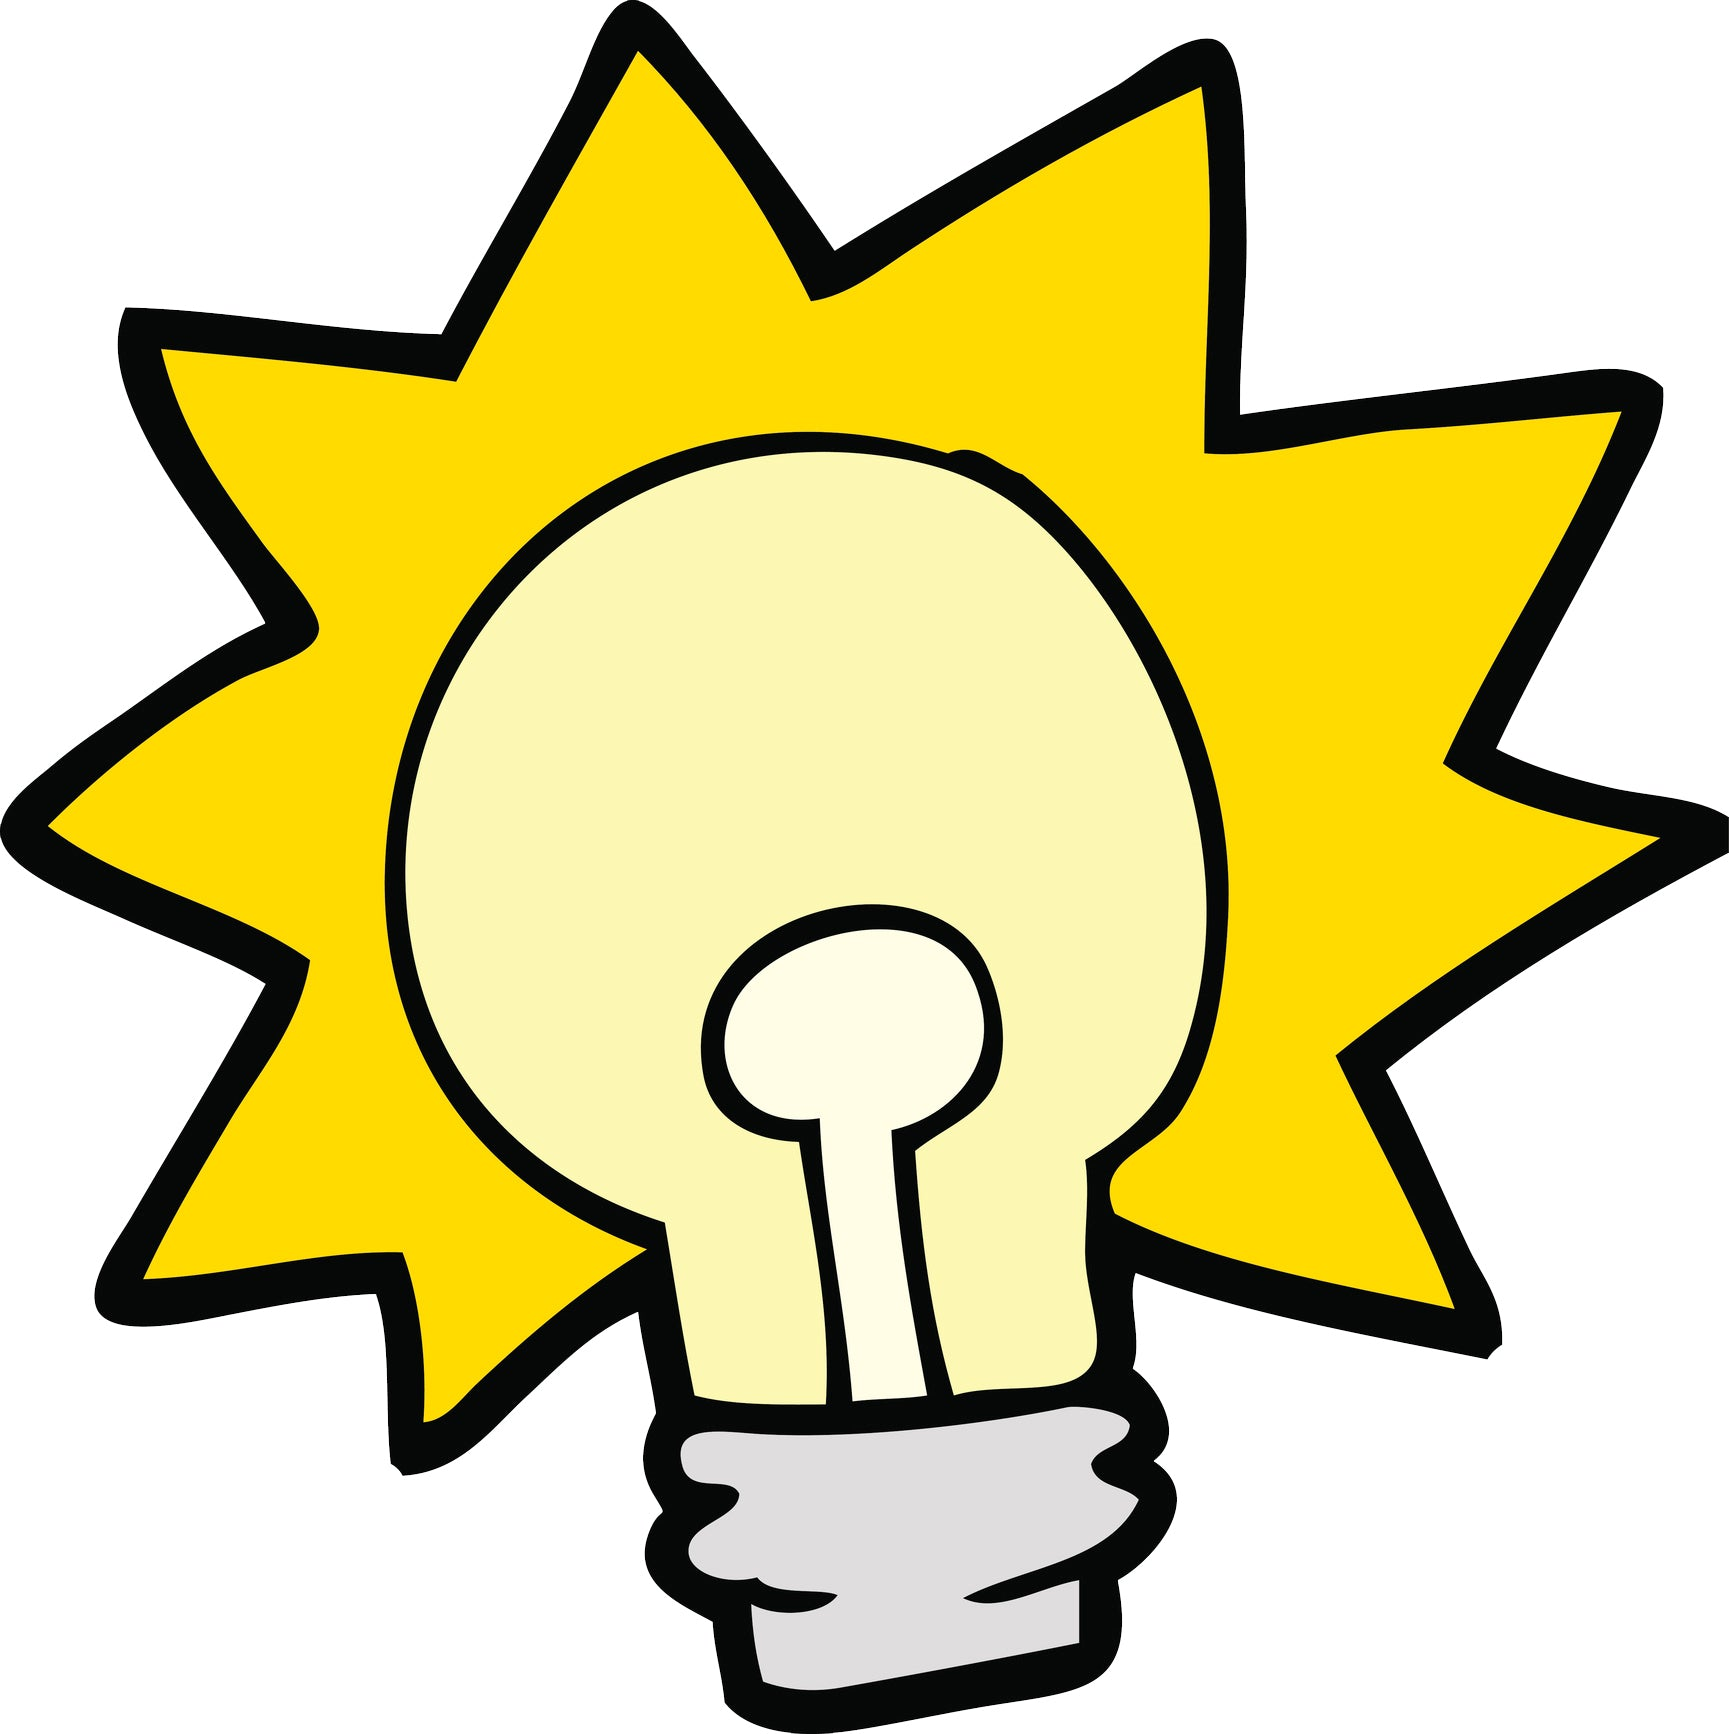 Simple Retro Light Bulb Idea Cartoon Drawing Vinyl Decal Sticker